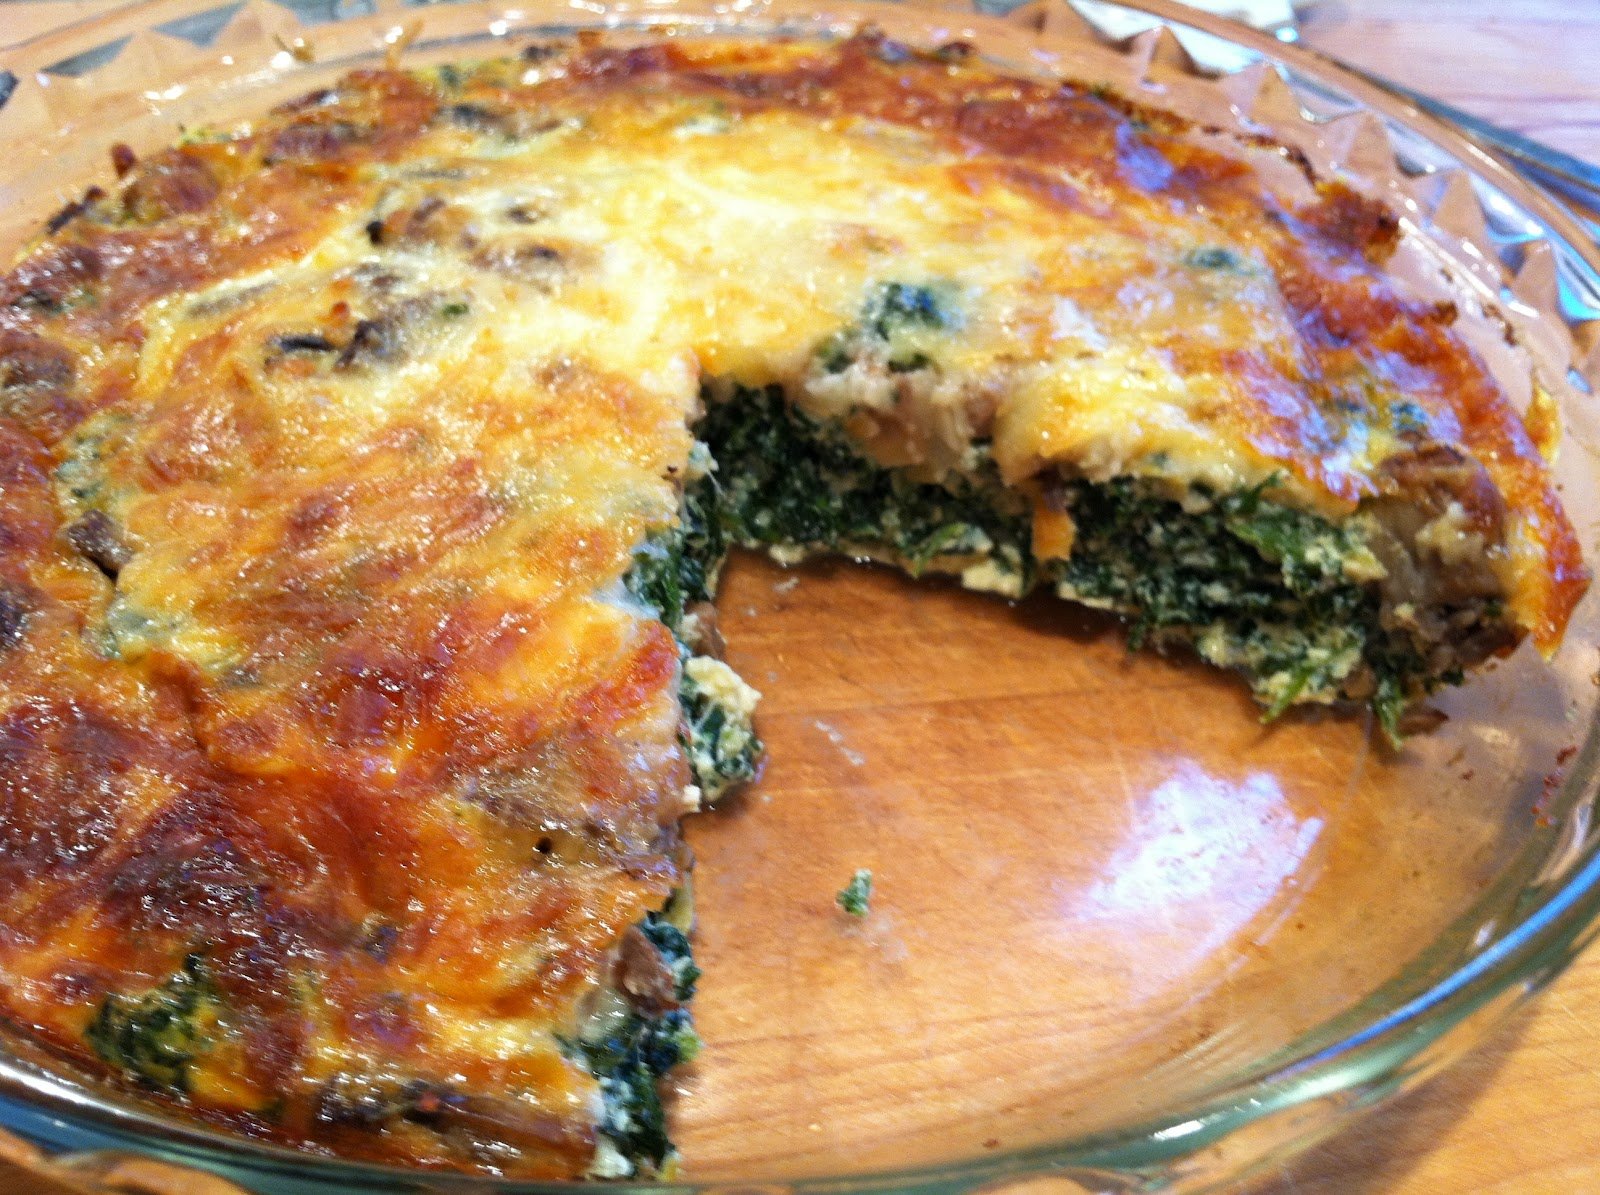 ... Tasty from My Kitchen: Spinach and Mushroom Crustless Quiche